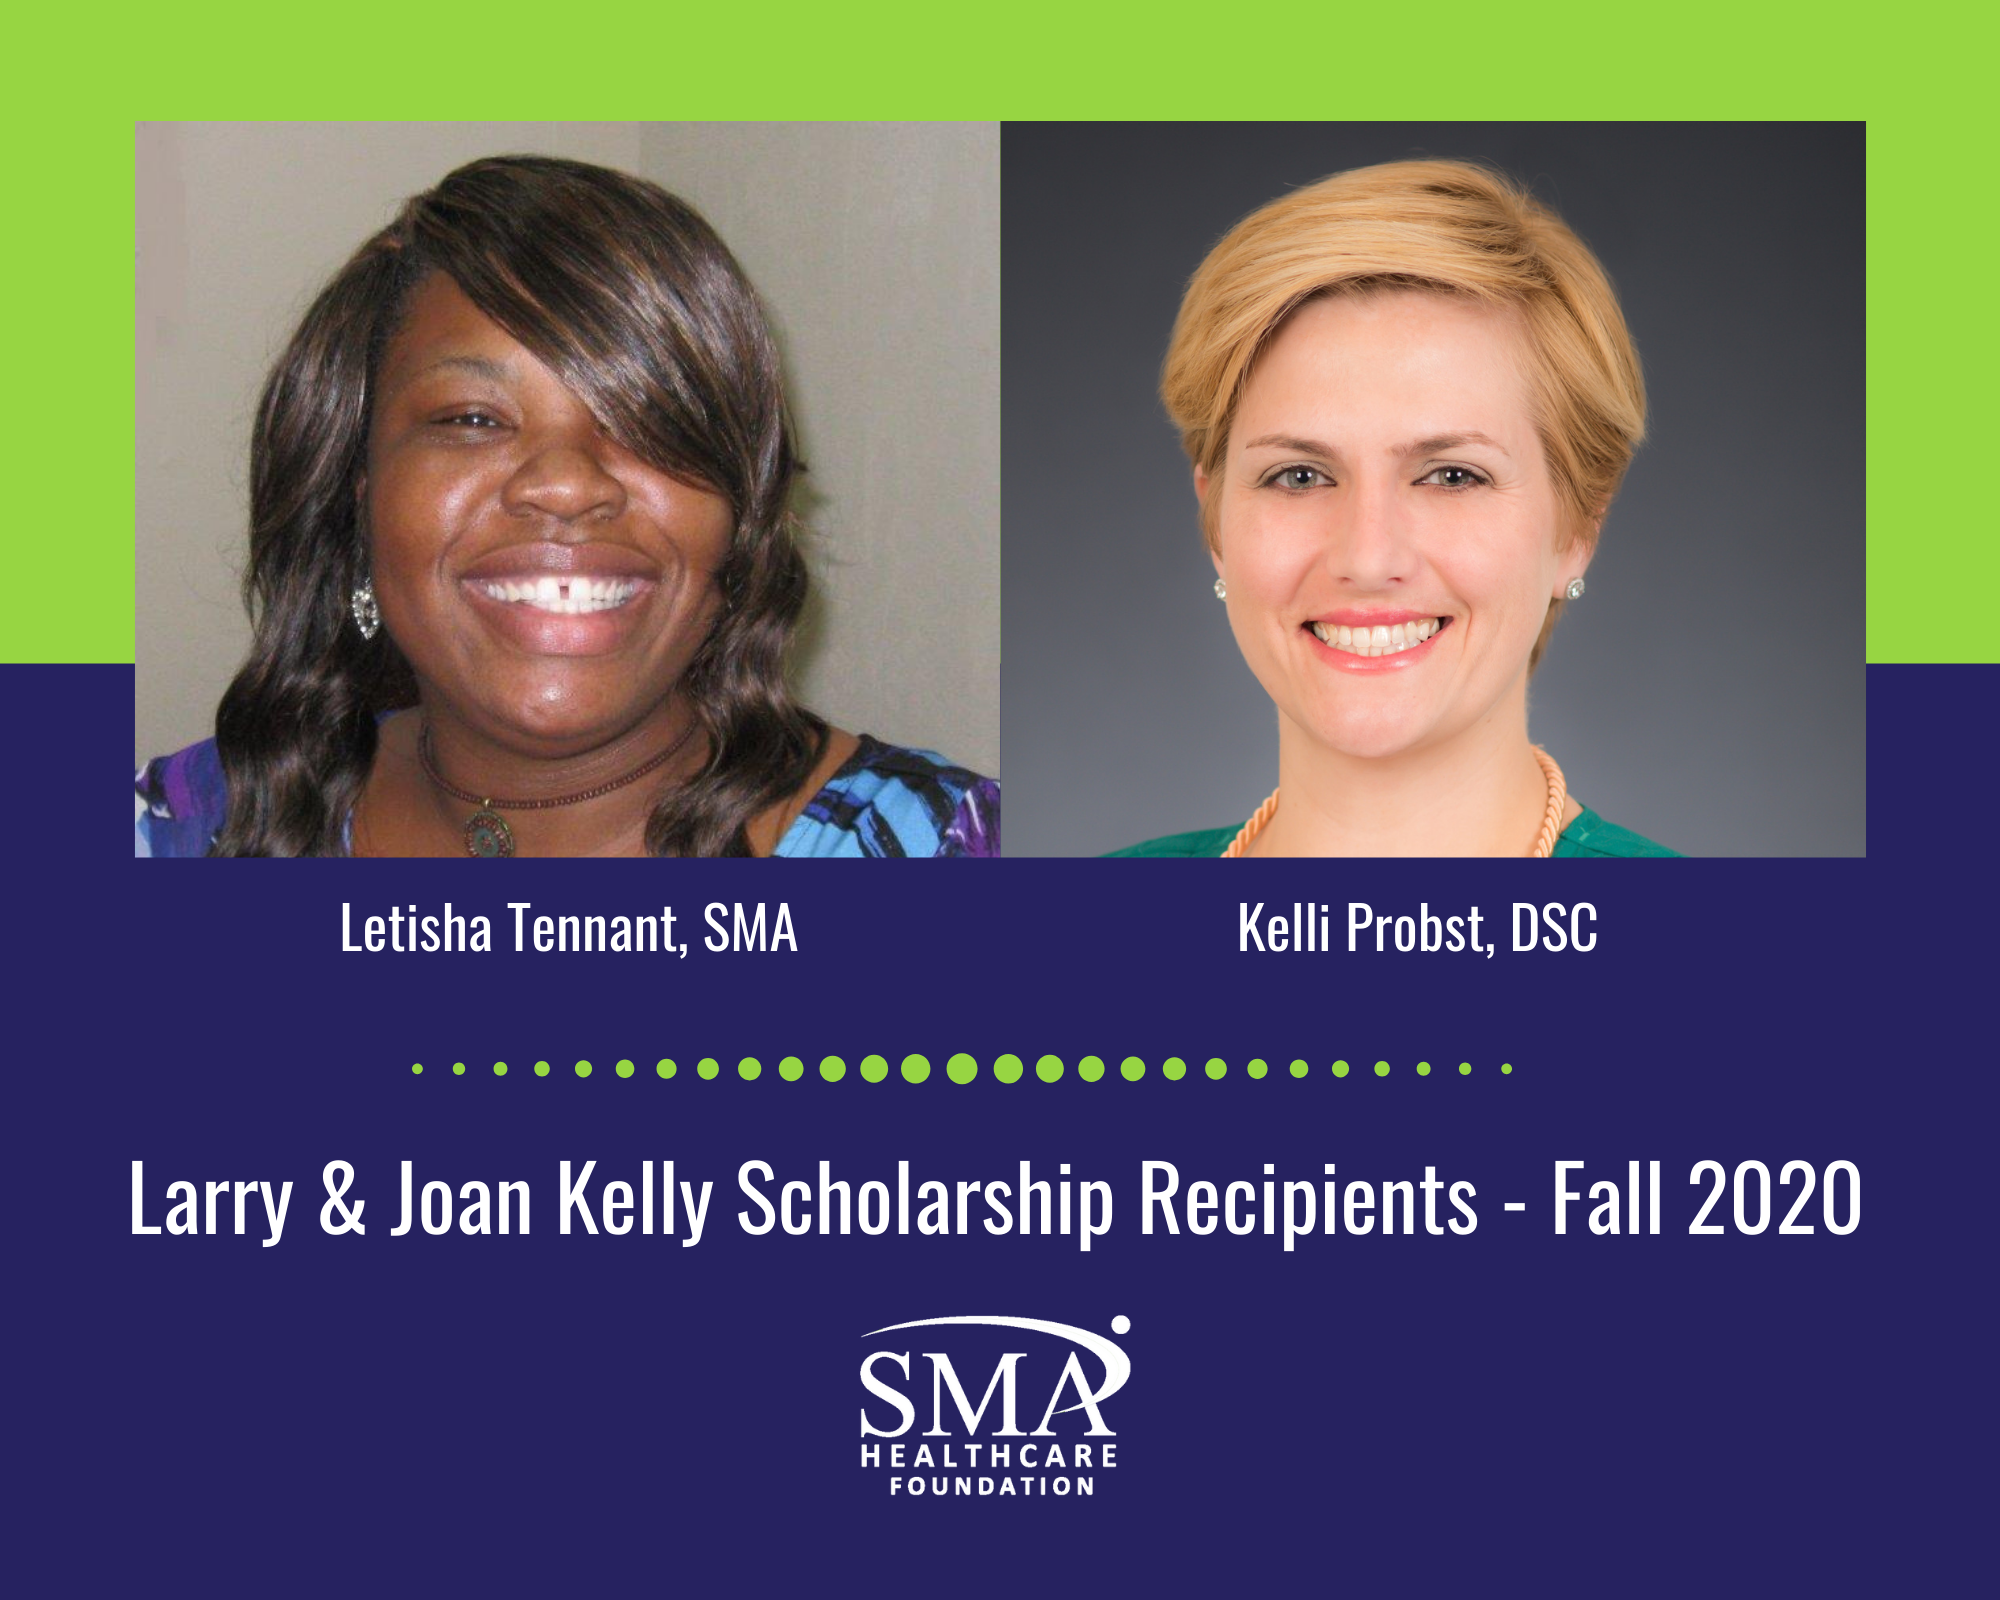 SMA HEALTHCARE FOUNDATION ANNOUNCES FIRST LARRY AND JOAN KELLY SCHOLARSHIP AWARDS